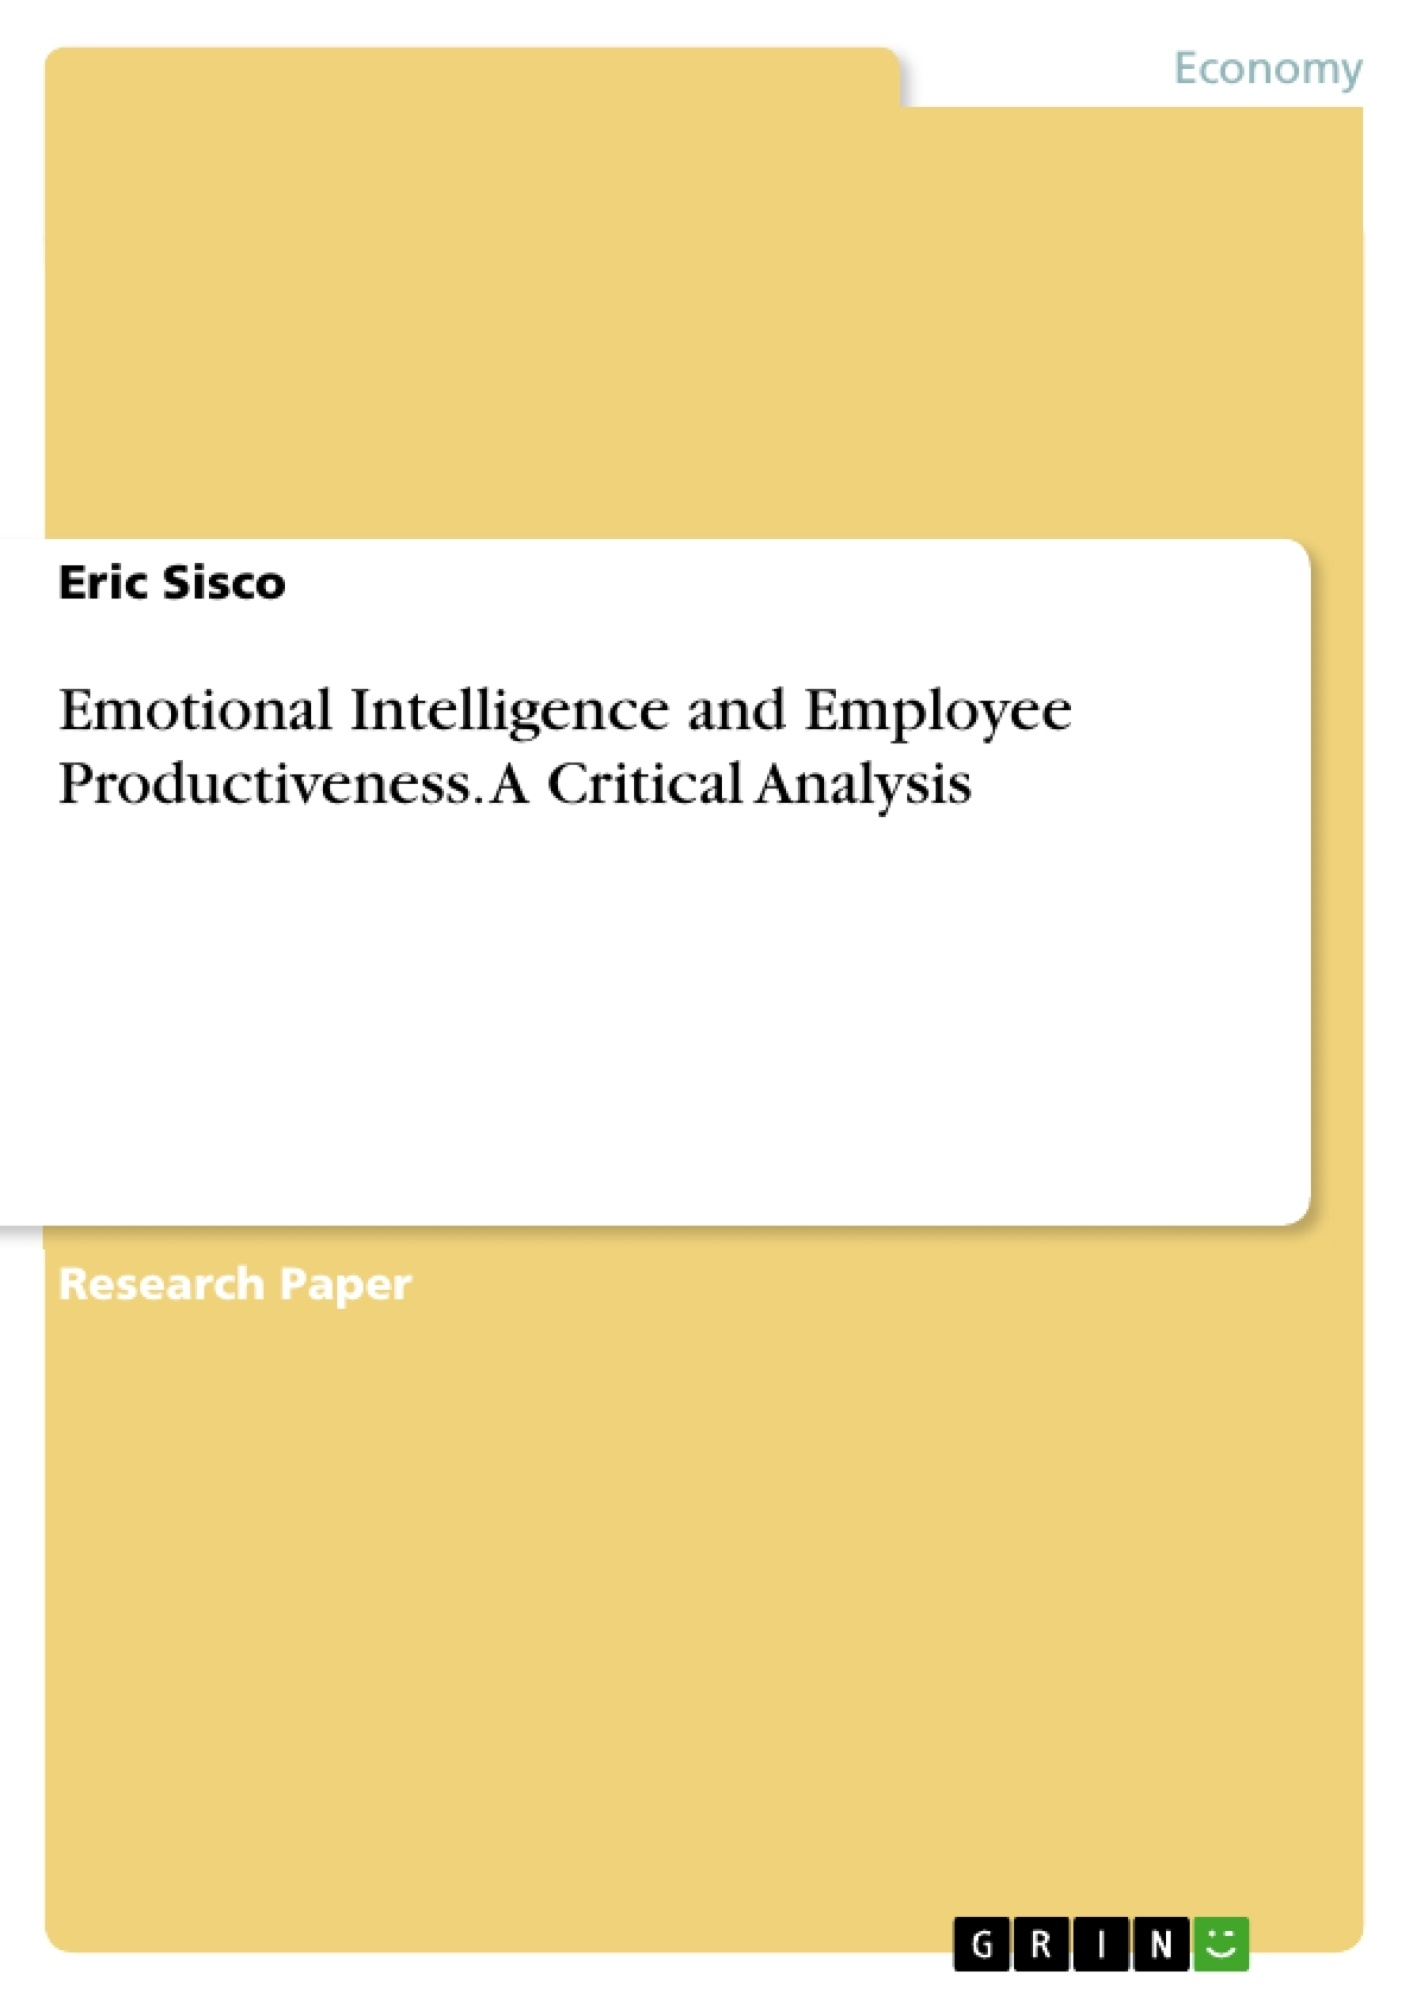 Title: Emotional Intelligence and Employee Productiveness. A Critical Analysis